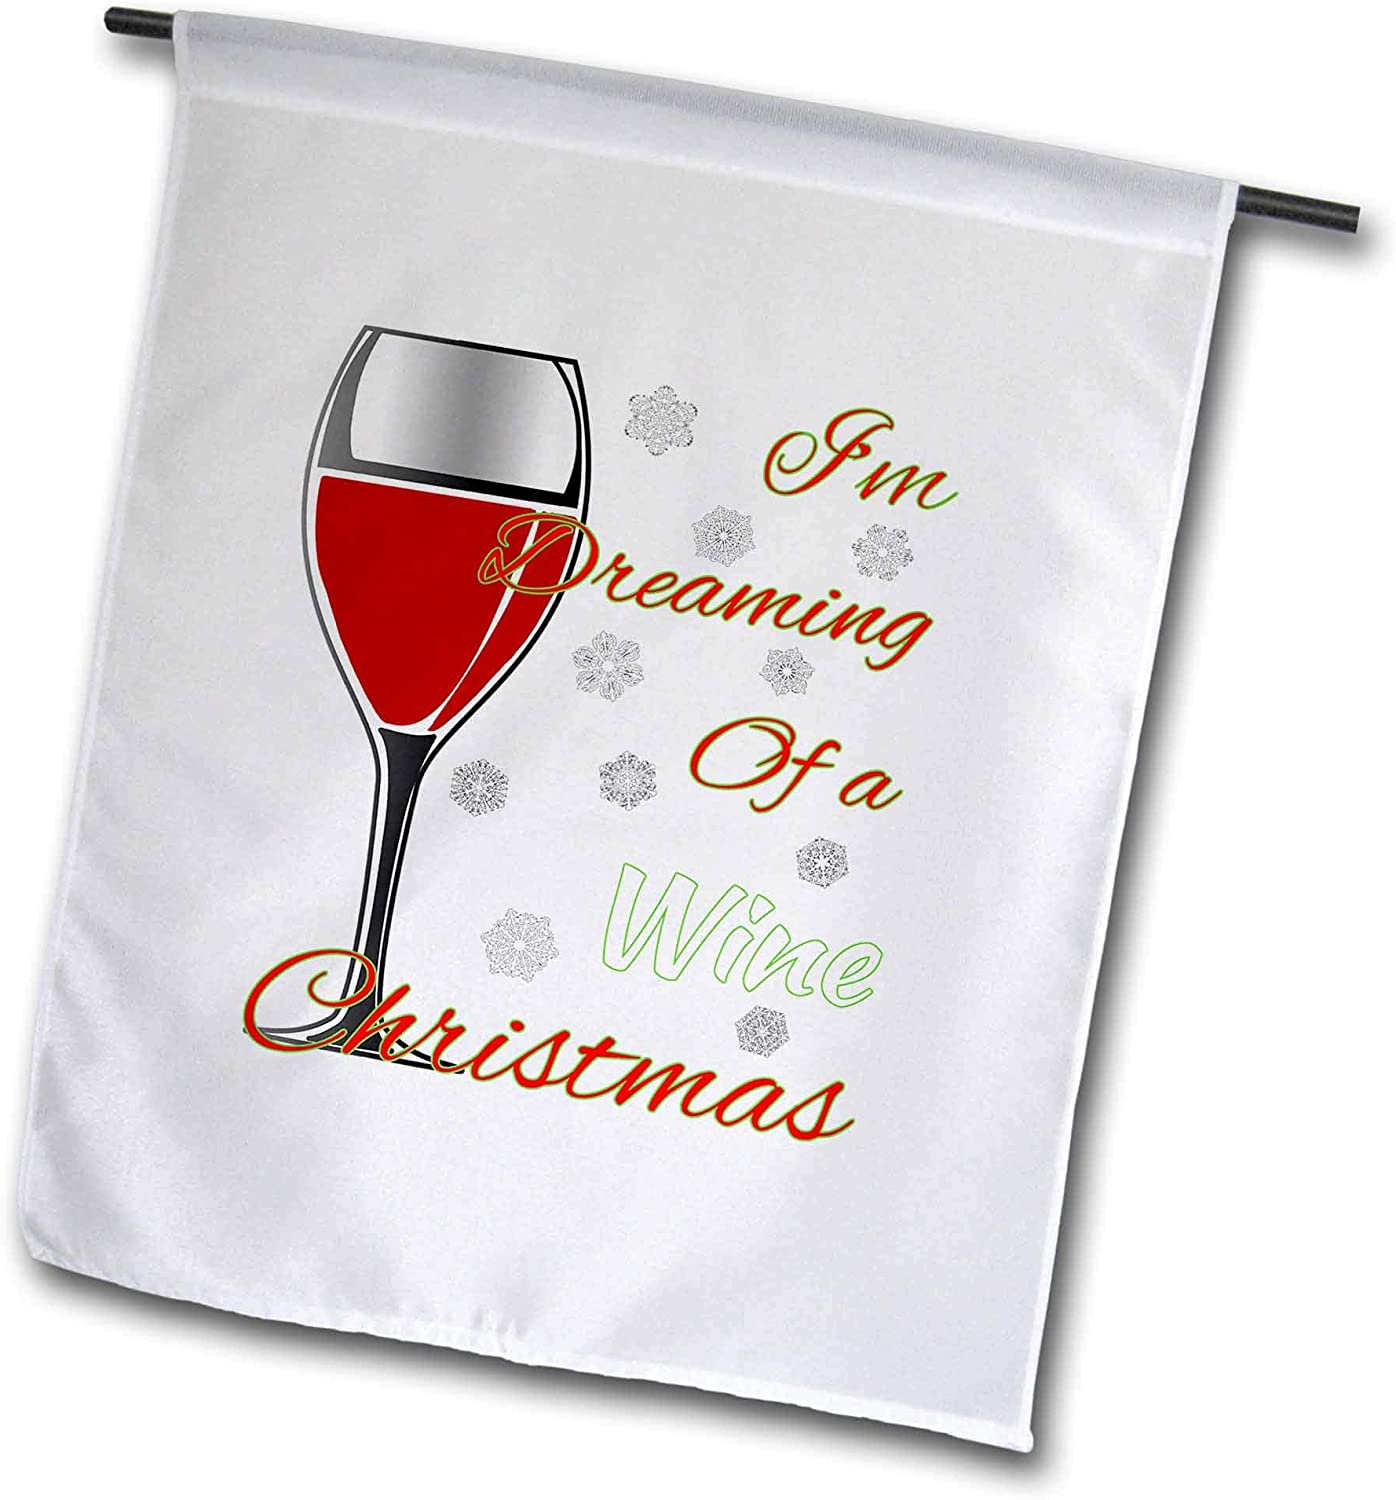 3dRose Macdonald Creative Studios – Merry Christmas - Im Dreaming of a Wine Christmas, Instead of a White Christmas. - 12 x 18 inch Garden Flag (fl_300920_1)